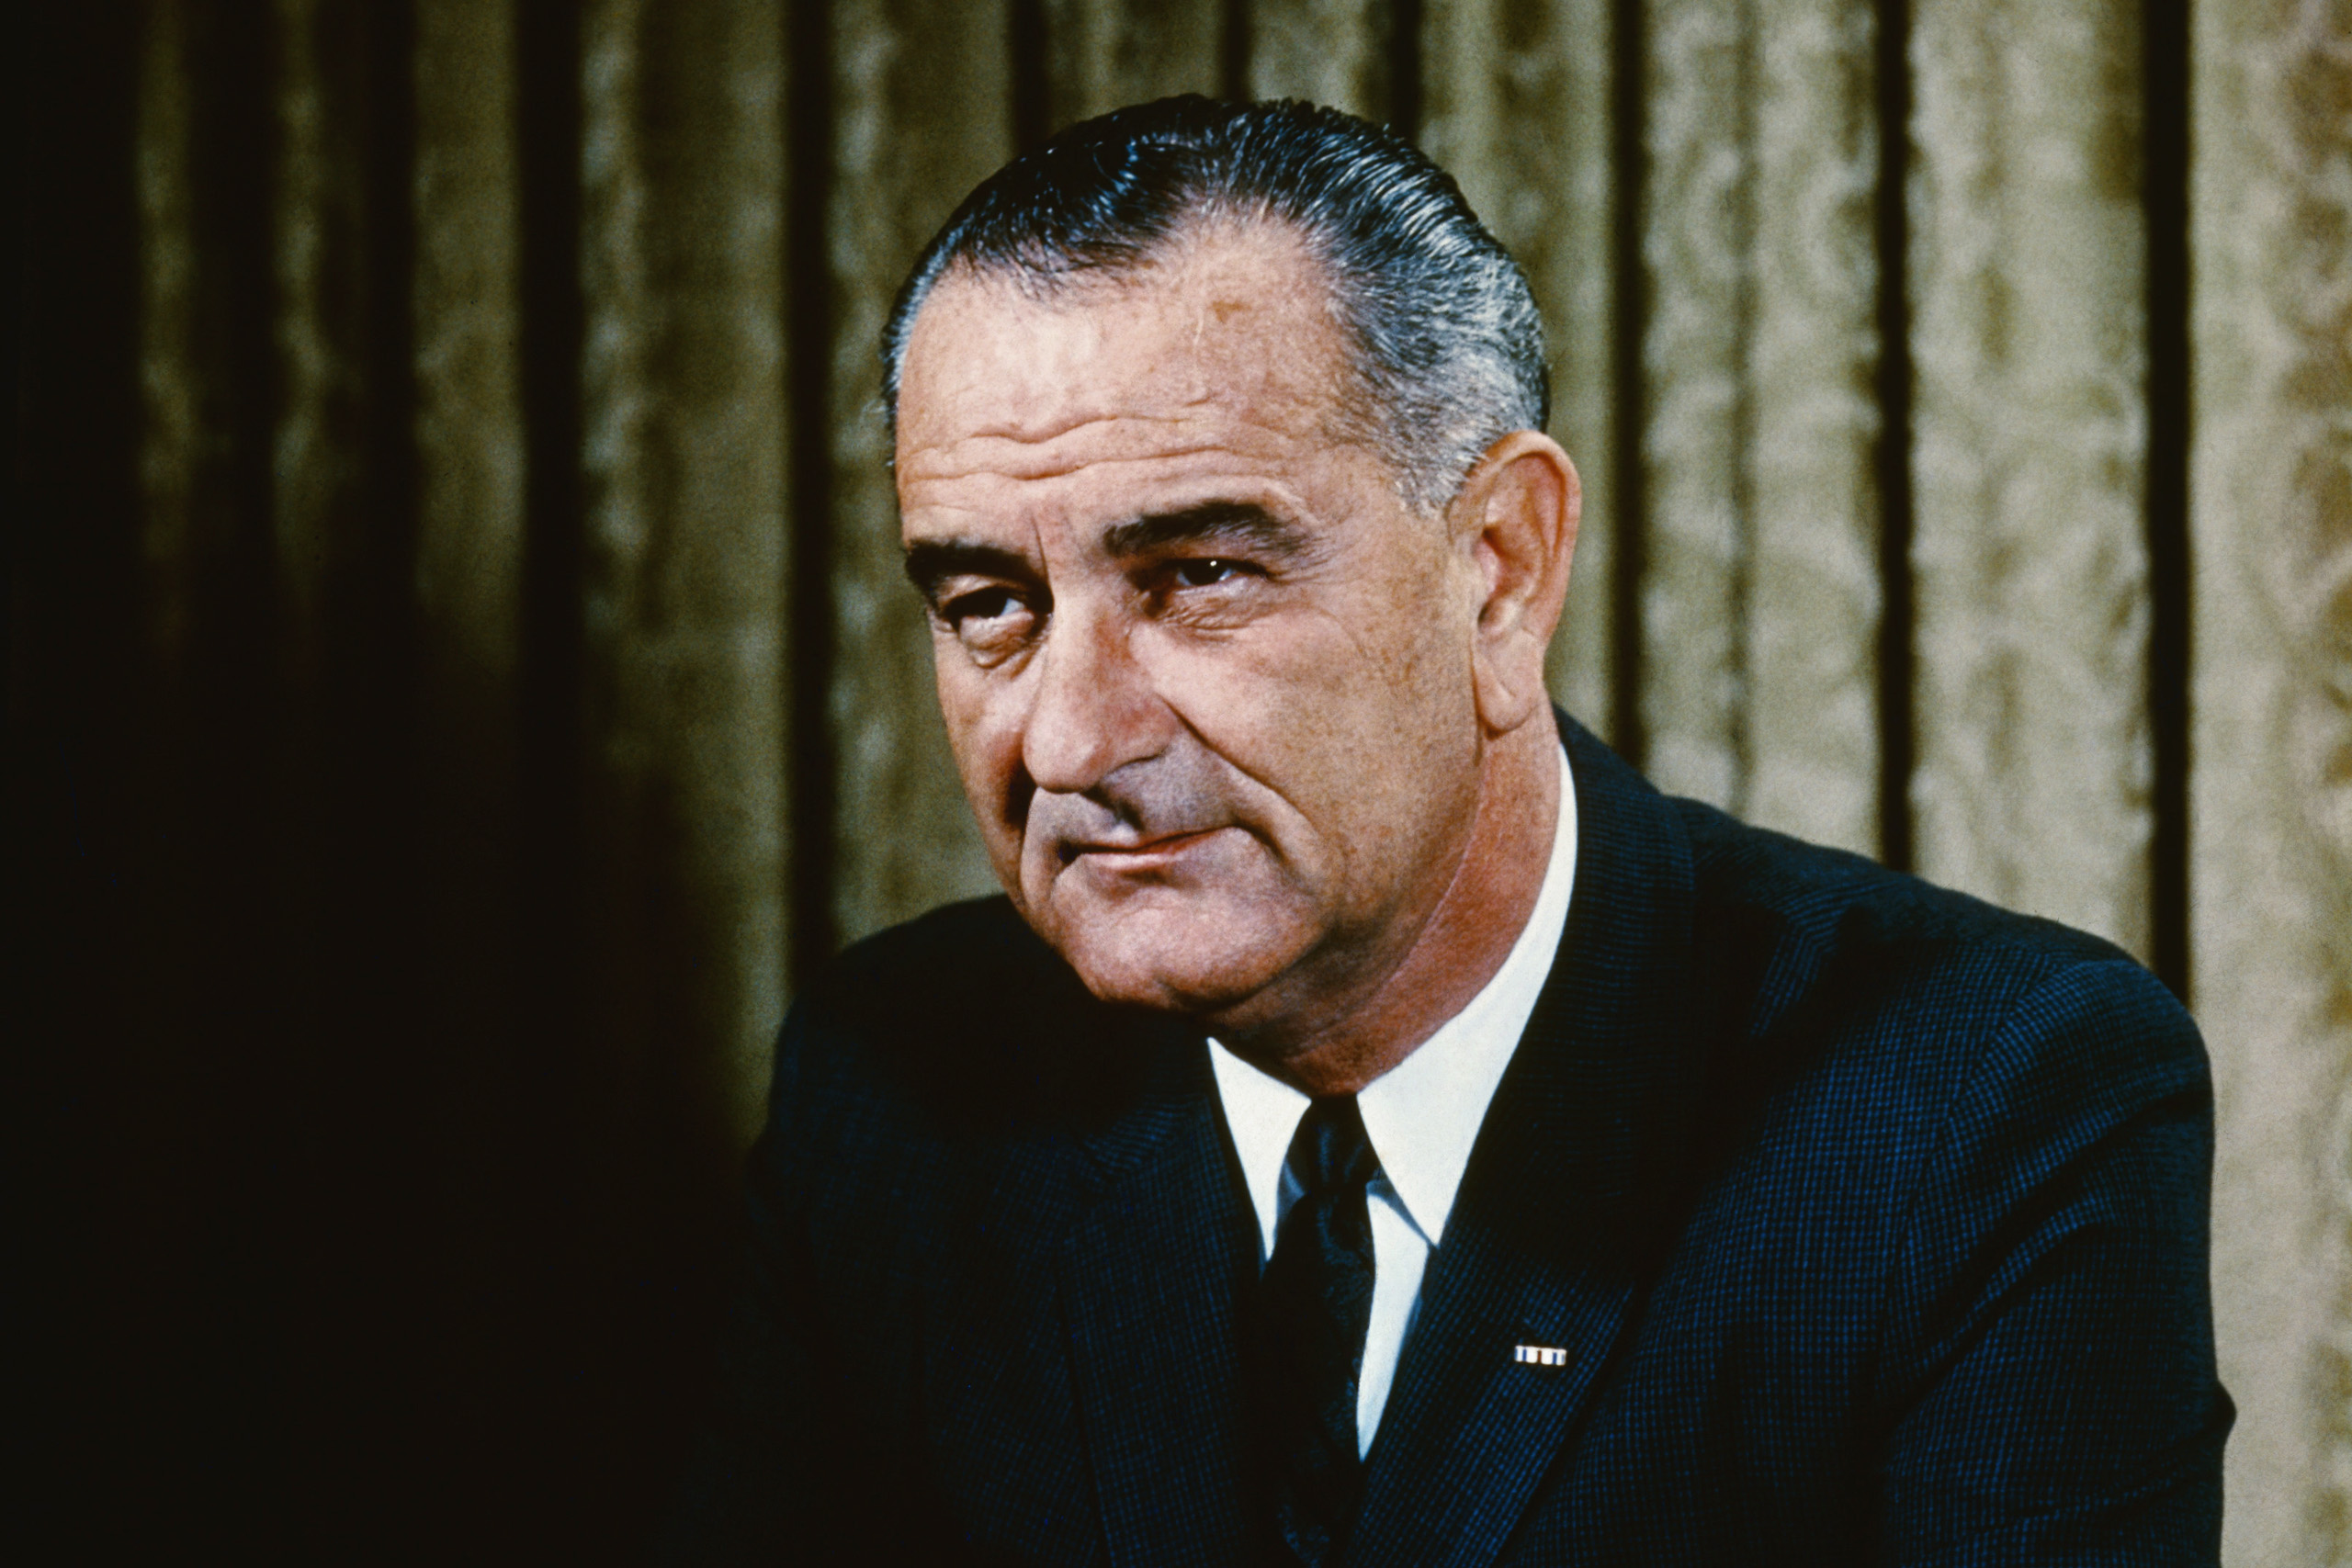 Image: Newly released JFK files reveal Democrat President Lyndon Johnson was a member of the KKK, which was run by Democrats